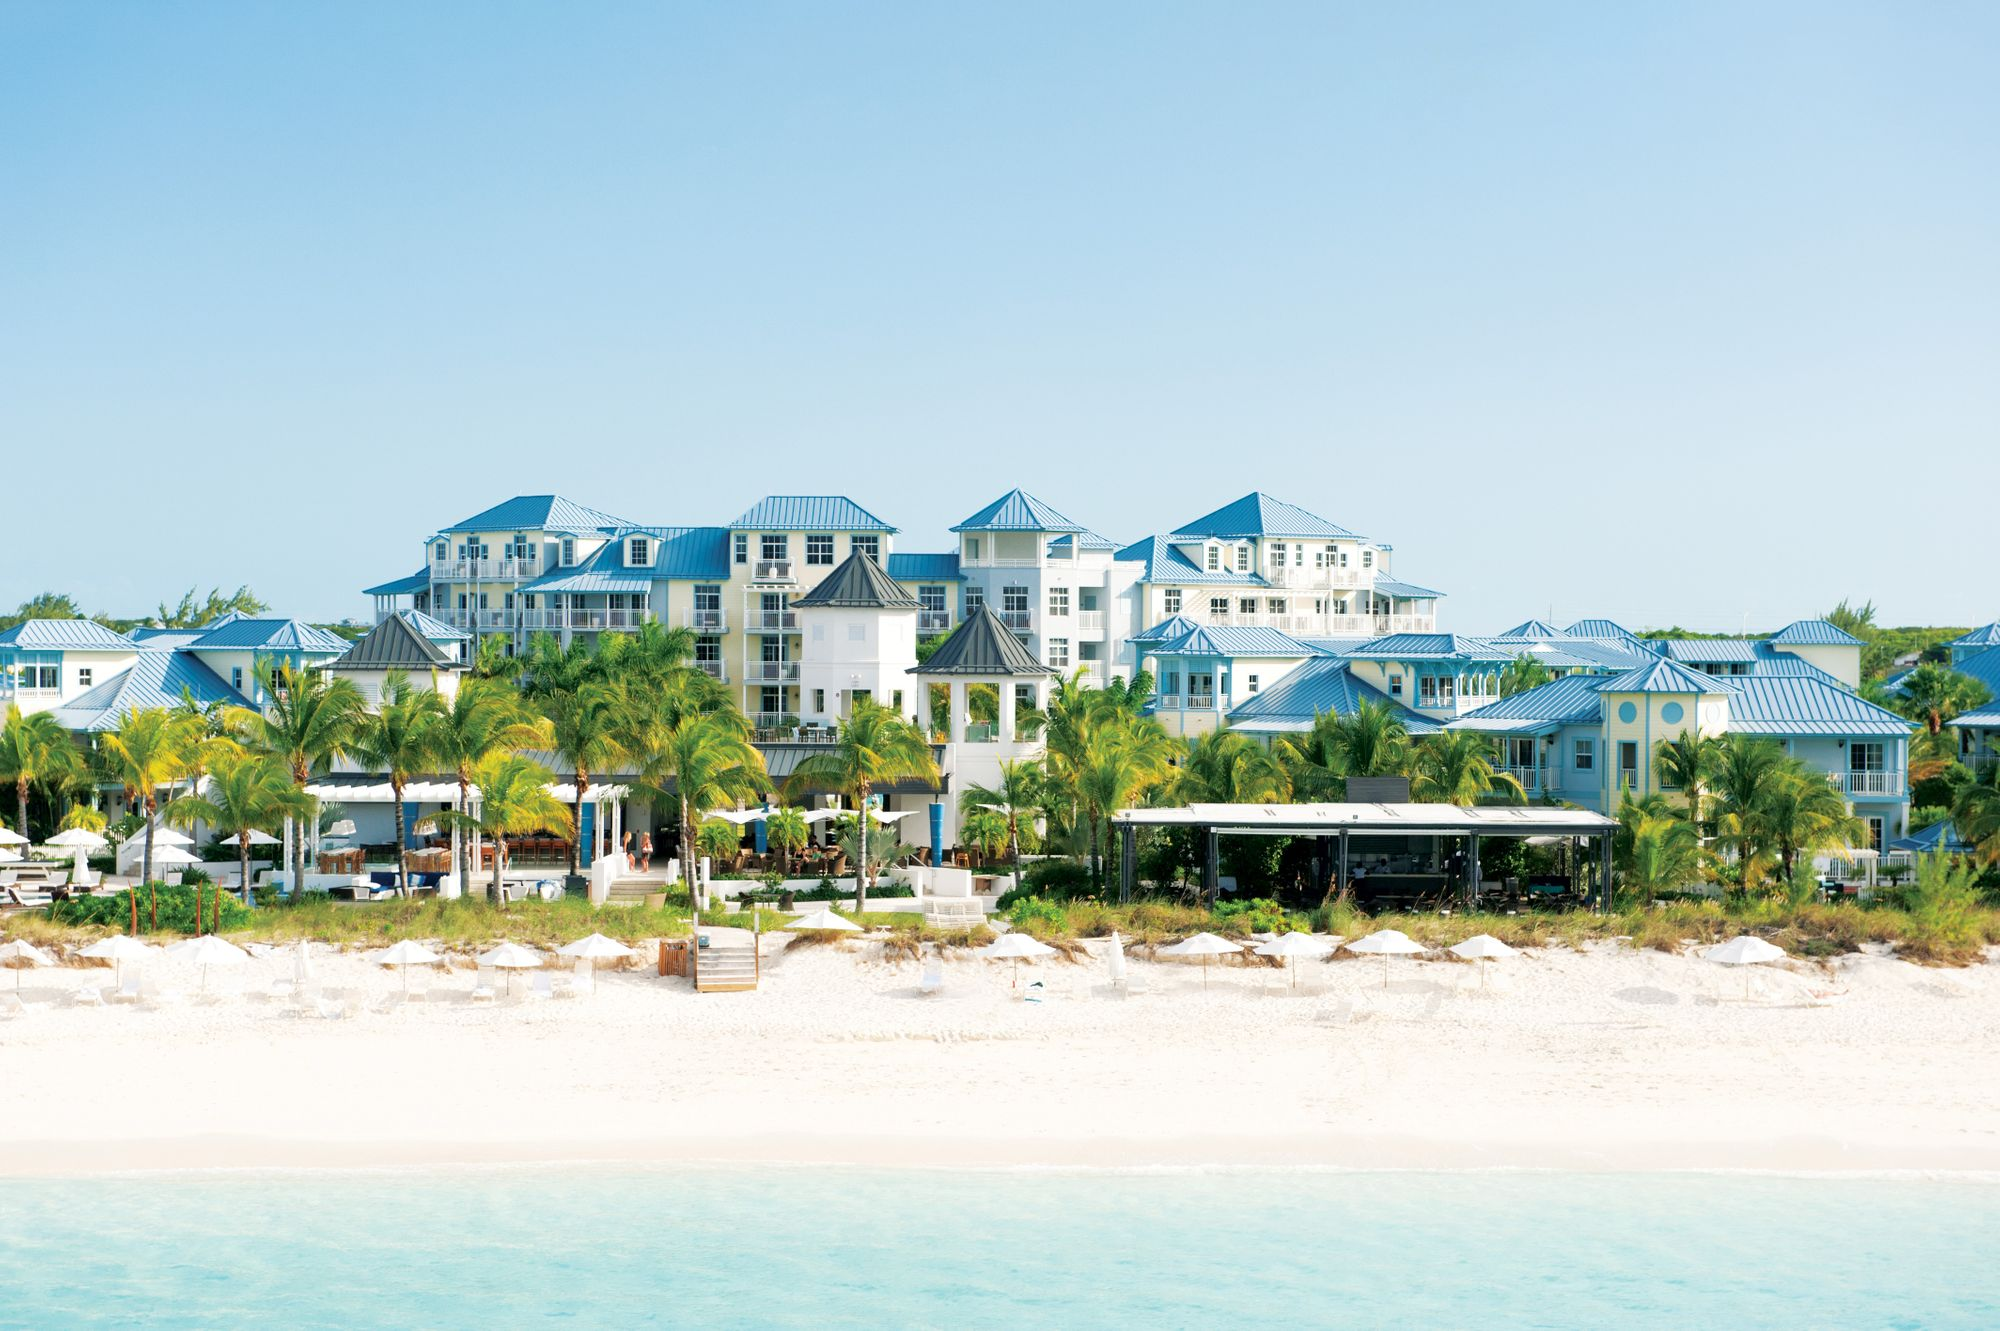 Sandals vs Beaches: Which All-Inclusive Resort Is Best For You?